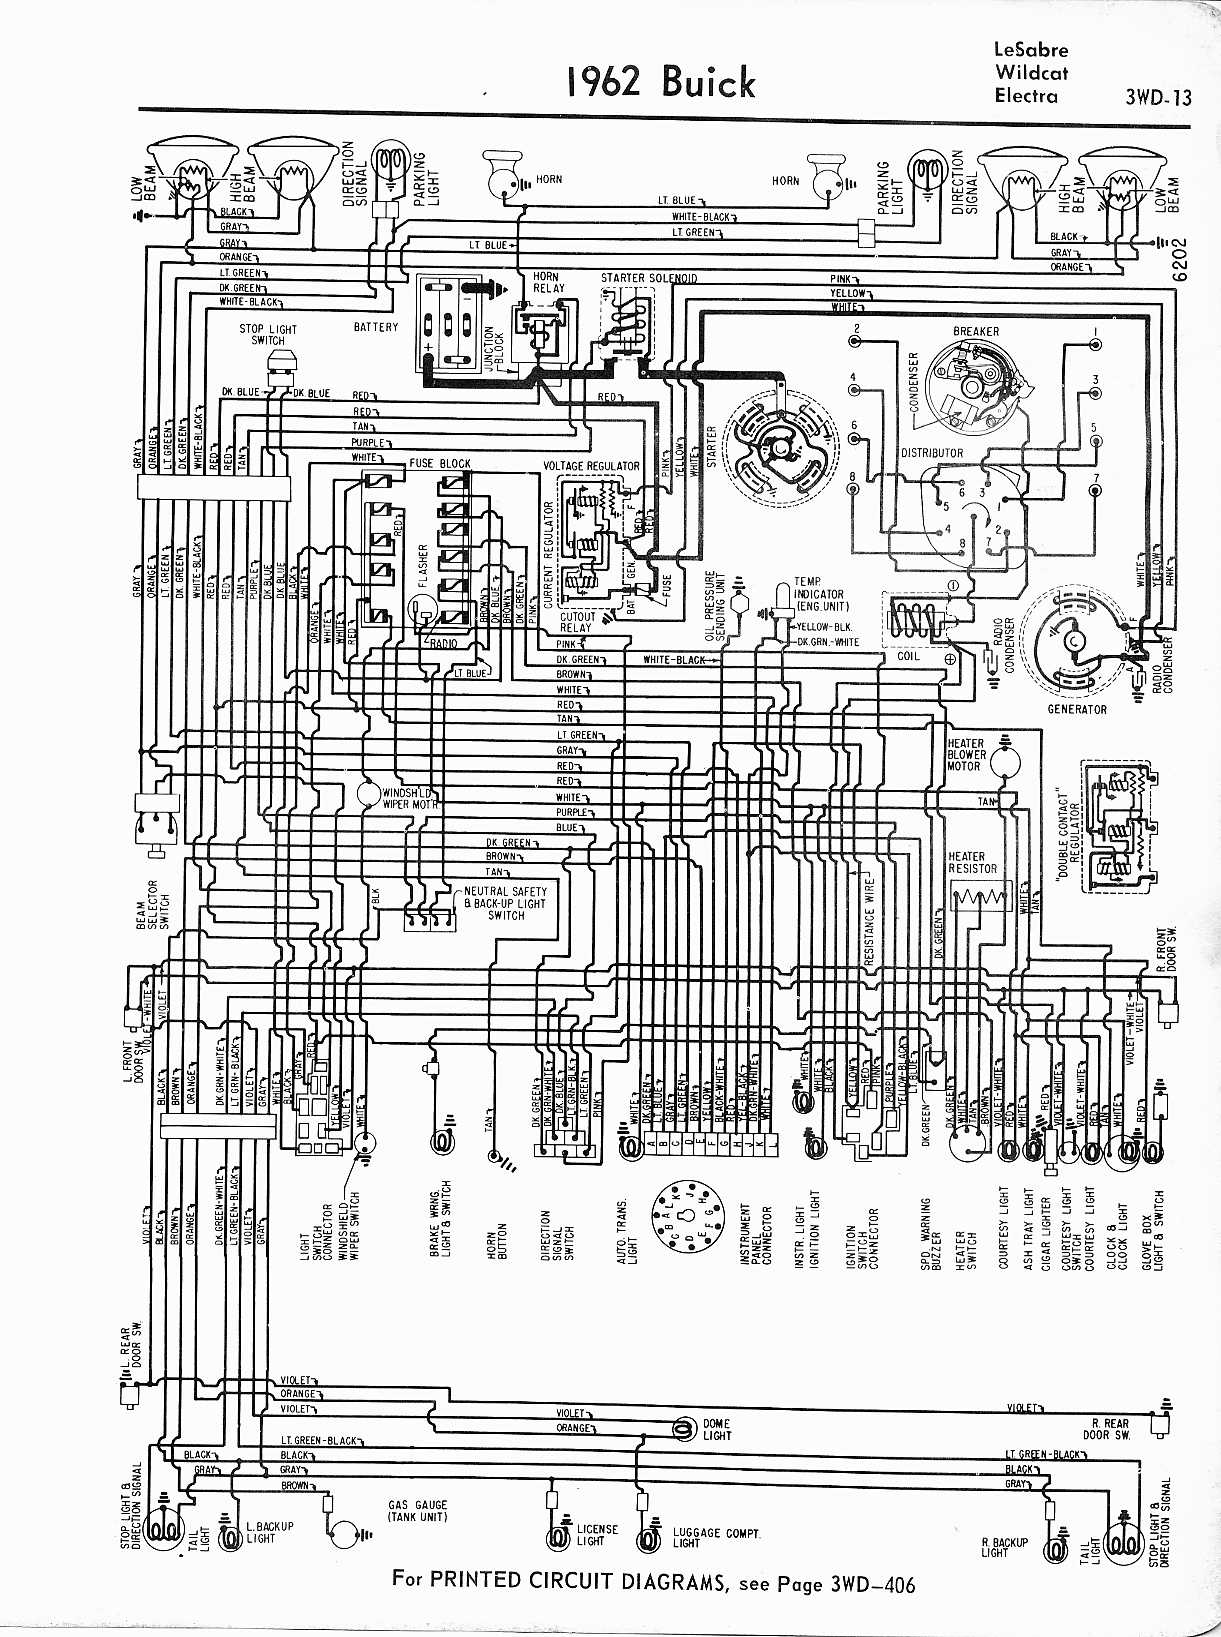 hight resolution of buick wiring diagrams 1957 1965 1966 chevy chevelle wiring diagram 1966 buick riviera wiring diagram